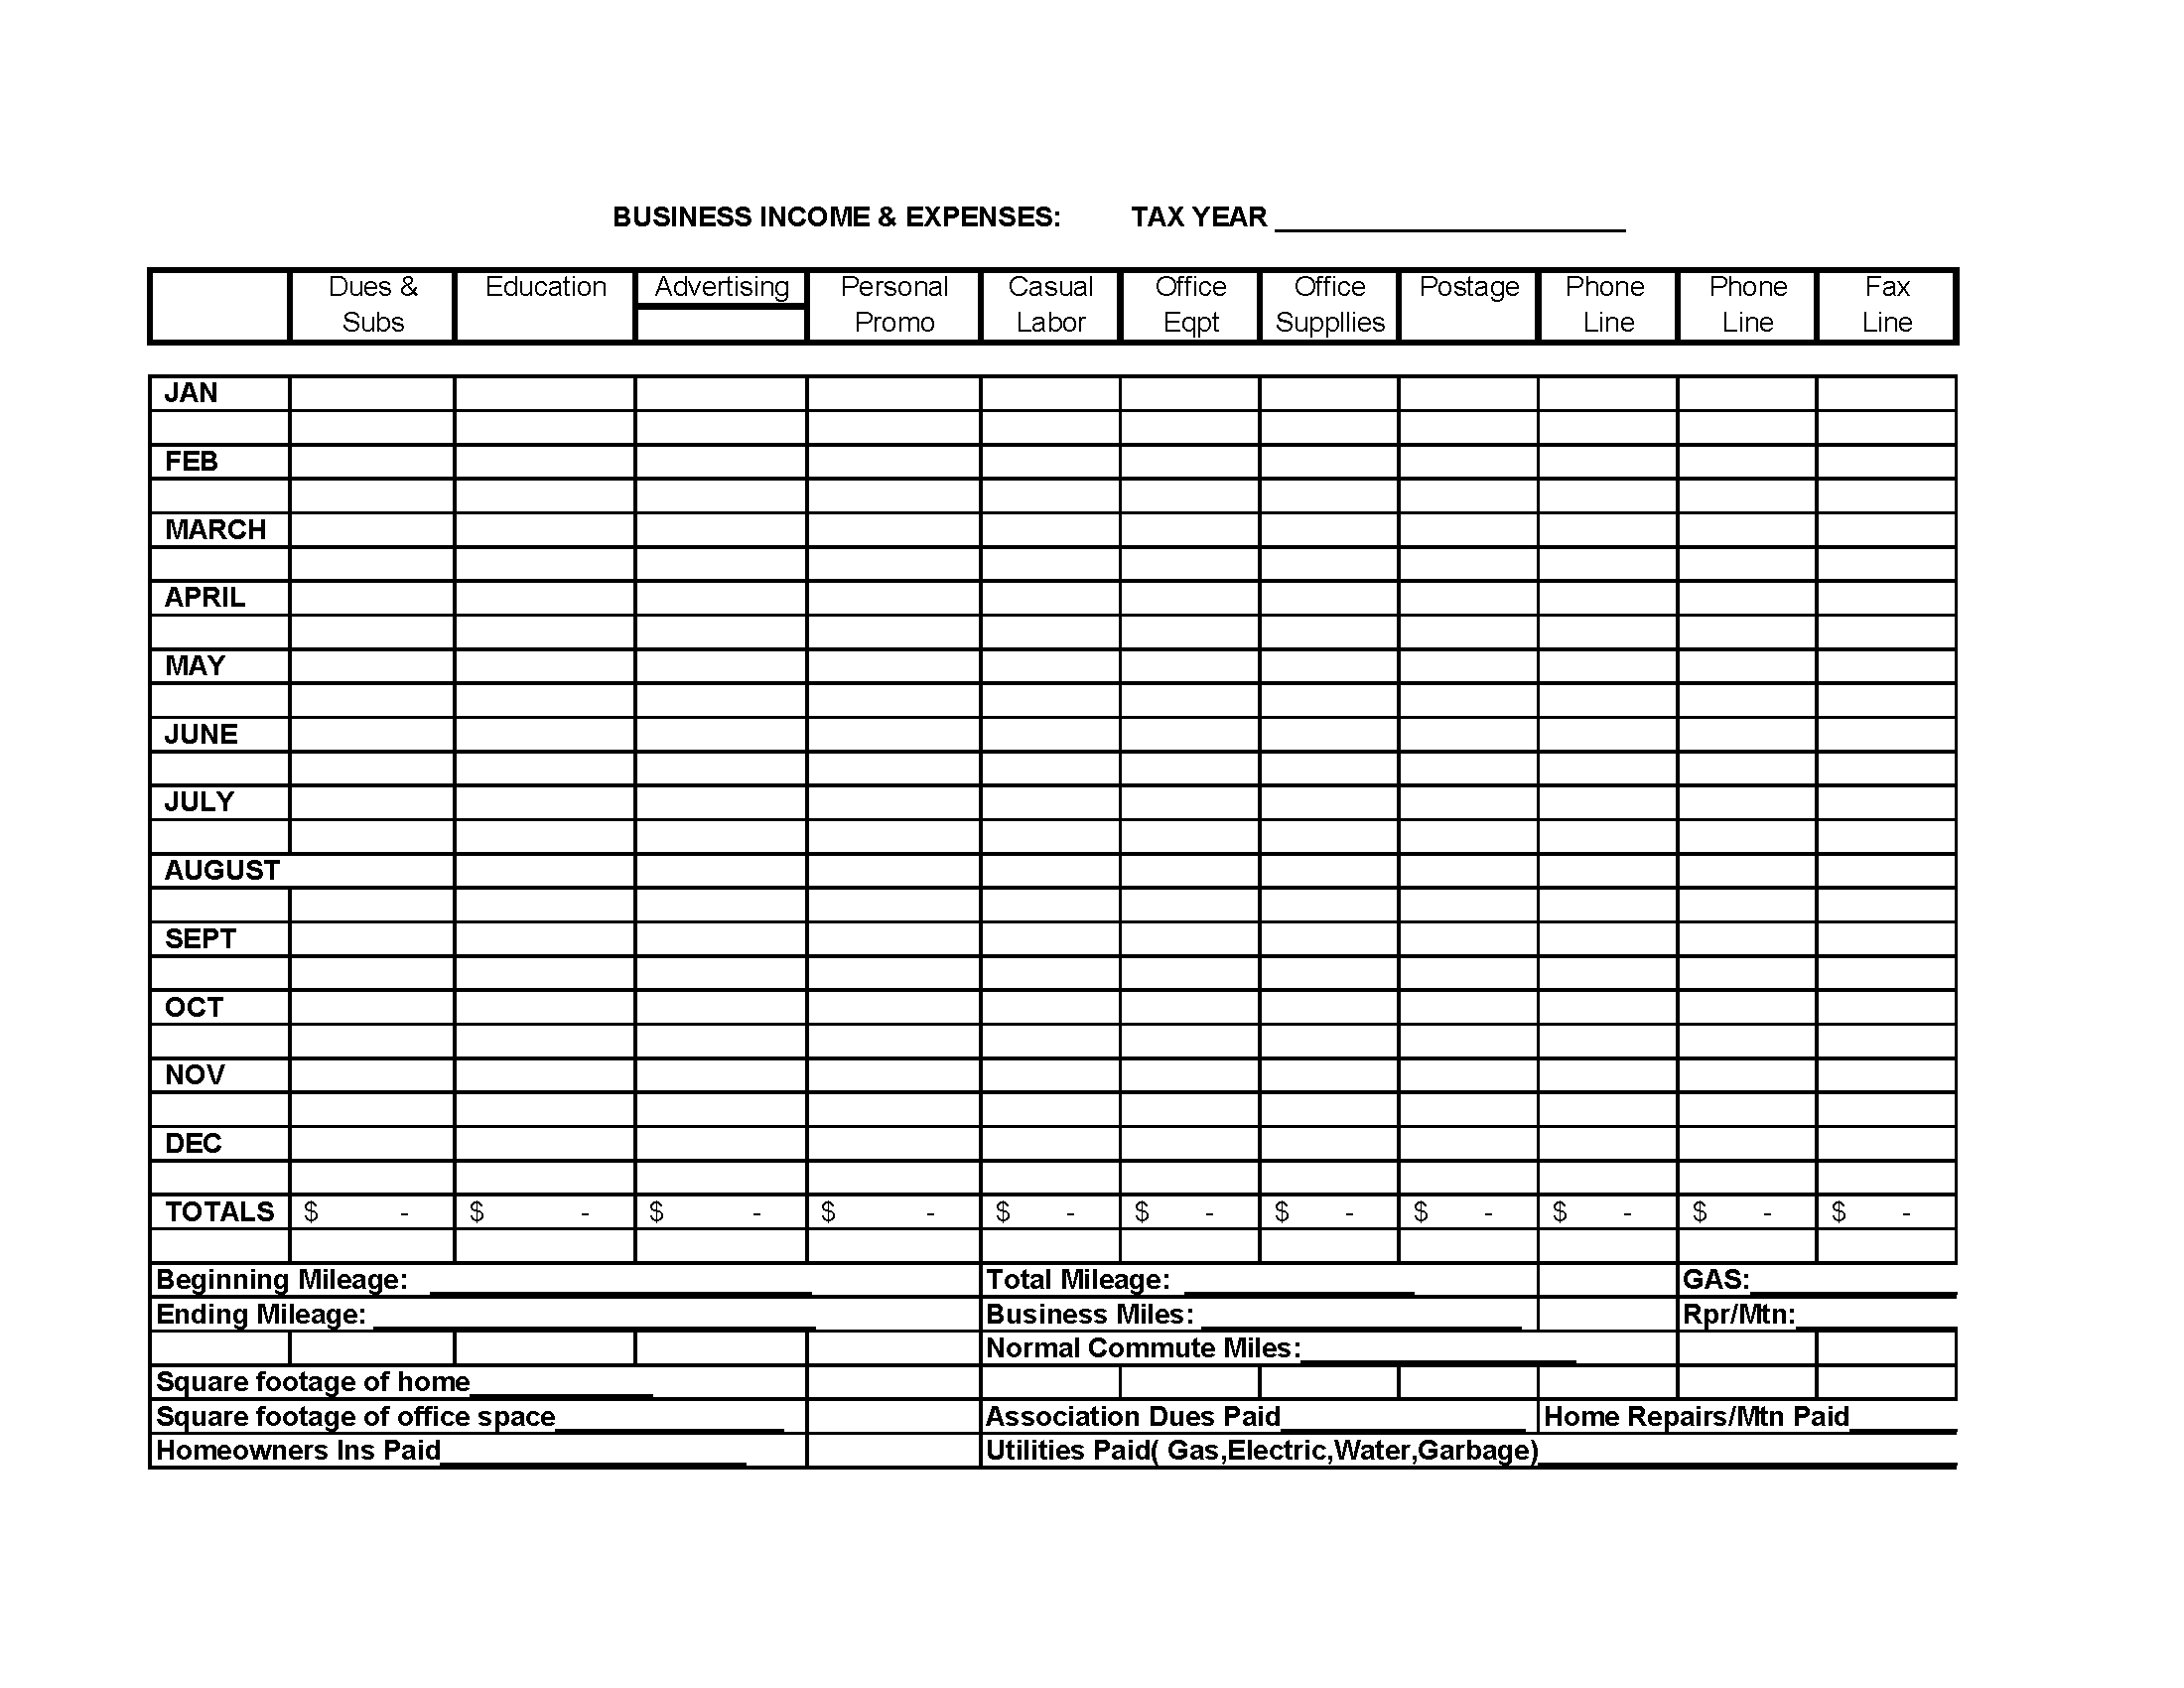 Invoice Tracking Spreadsheet Template and Business In E Expense Spreadsheet Template Business